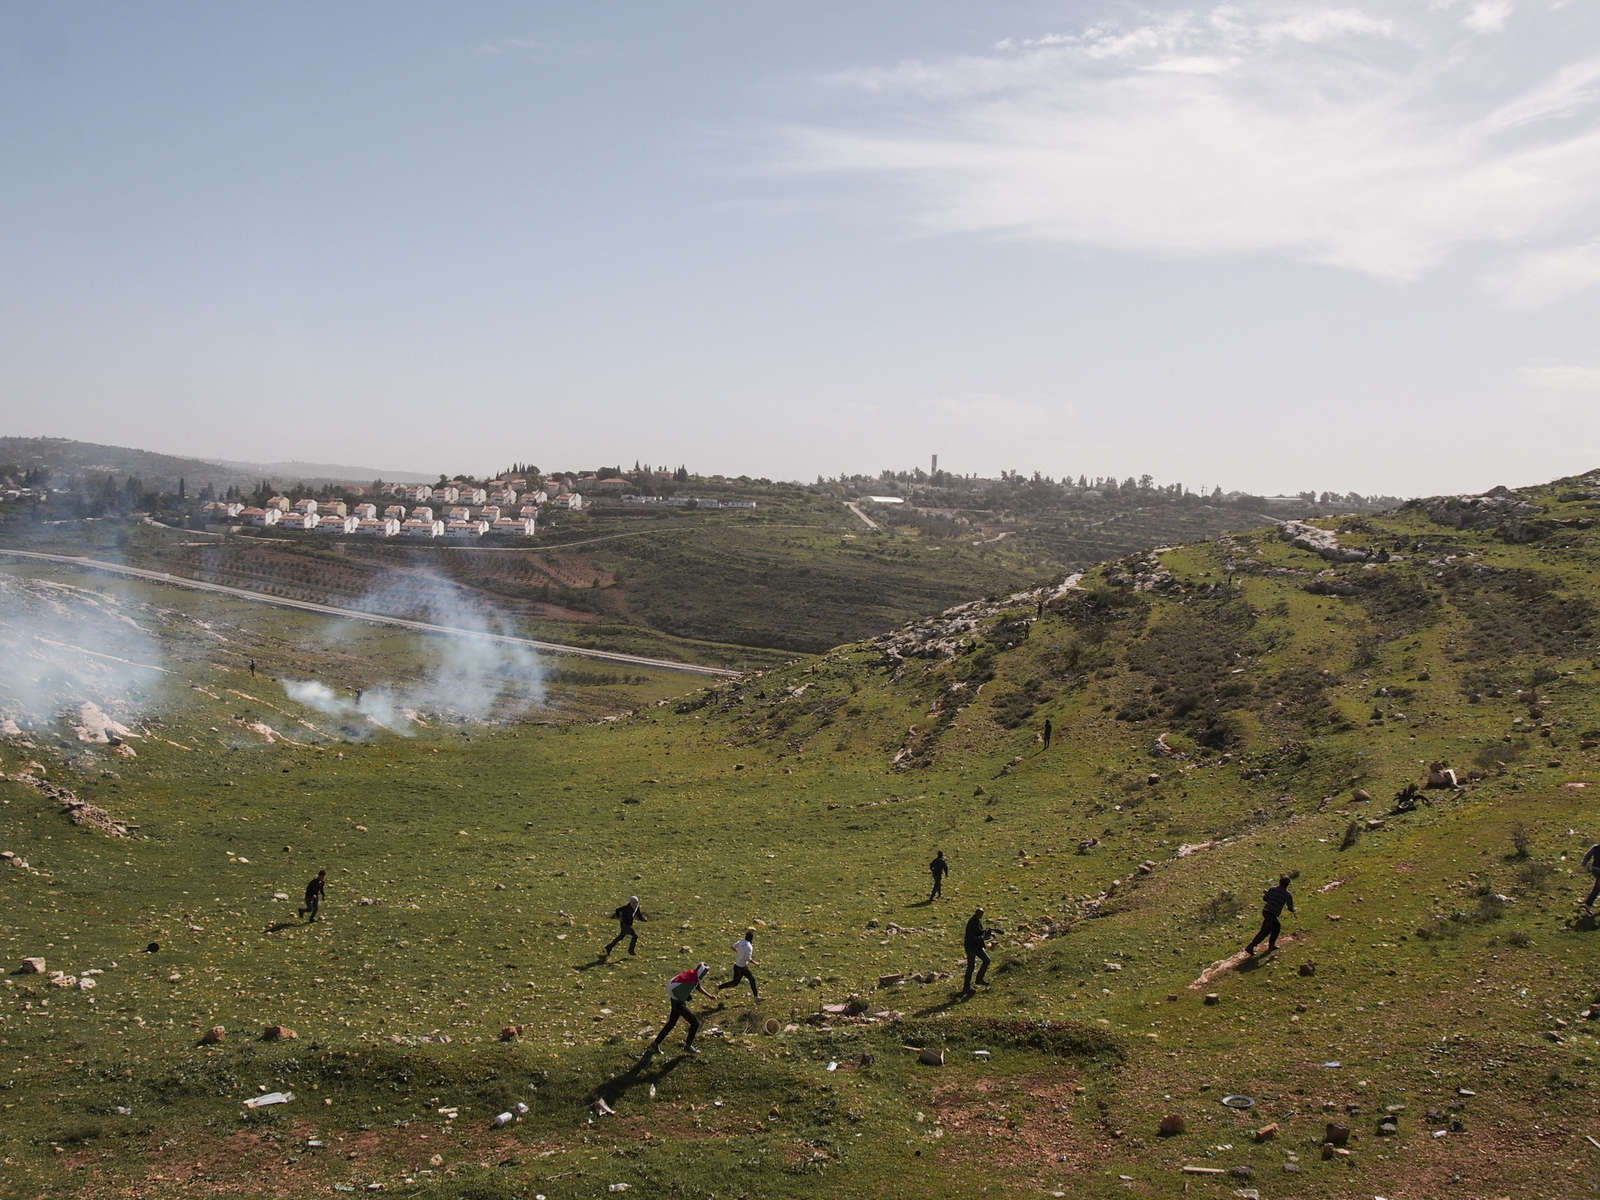 West Bank.  Nabi Saleh.  2013.  Protestors run away as Israeli soldiers fire tear gas at them.  The Israeli settlement of Halimish is in the background. Residents of Nabi Saleh have been protesting the Israeli Occupation every Friday after midday prayers since 2009.  The protests started after Israelis from the nearby settlement of Halimish took over a small spring that had been on Palestinian land.  After widening and adding a bench to the spring, the settlers refused to allow the Palestinians to continue using it.  The weekly protests quickly devolve into rock throwing by the Palestinians and tear gas, rubber bullets, and 'skunk' (a spray mixed with water that has a horrific stench that can linger for weeks) in response by the Israelis.